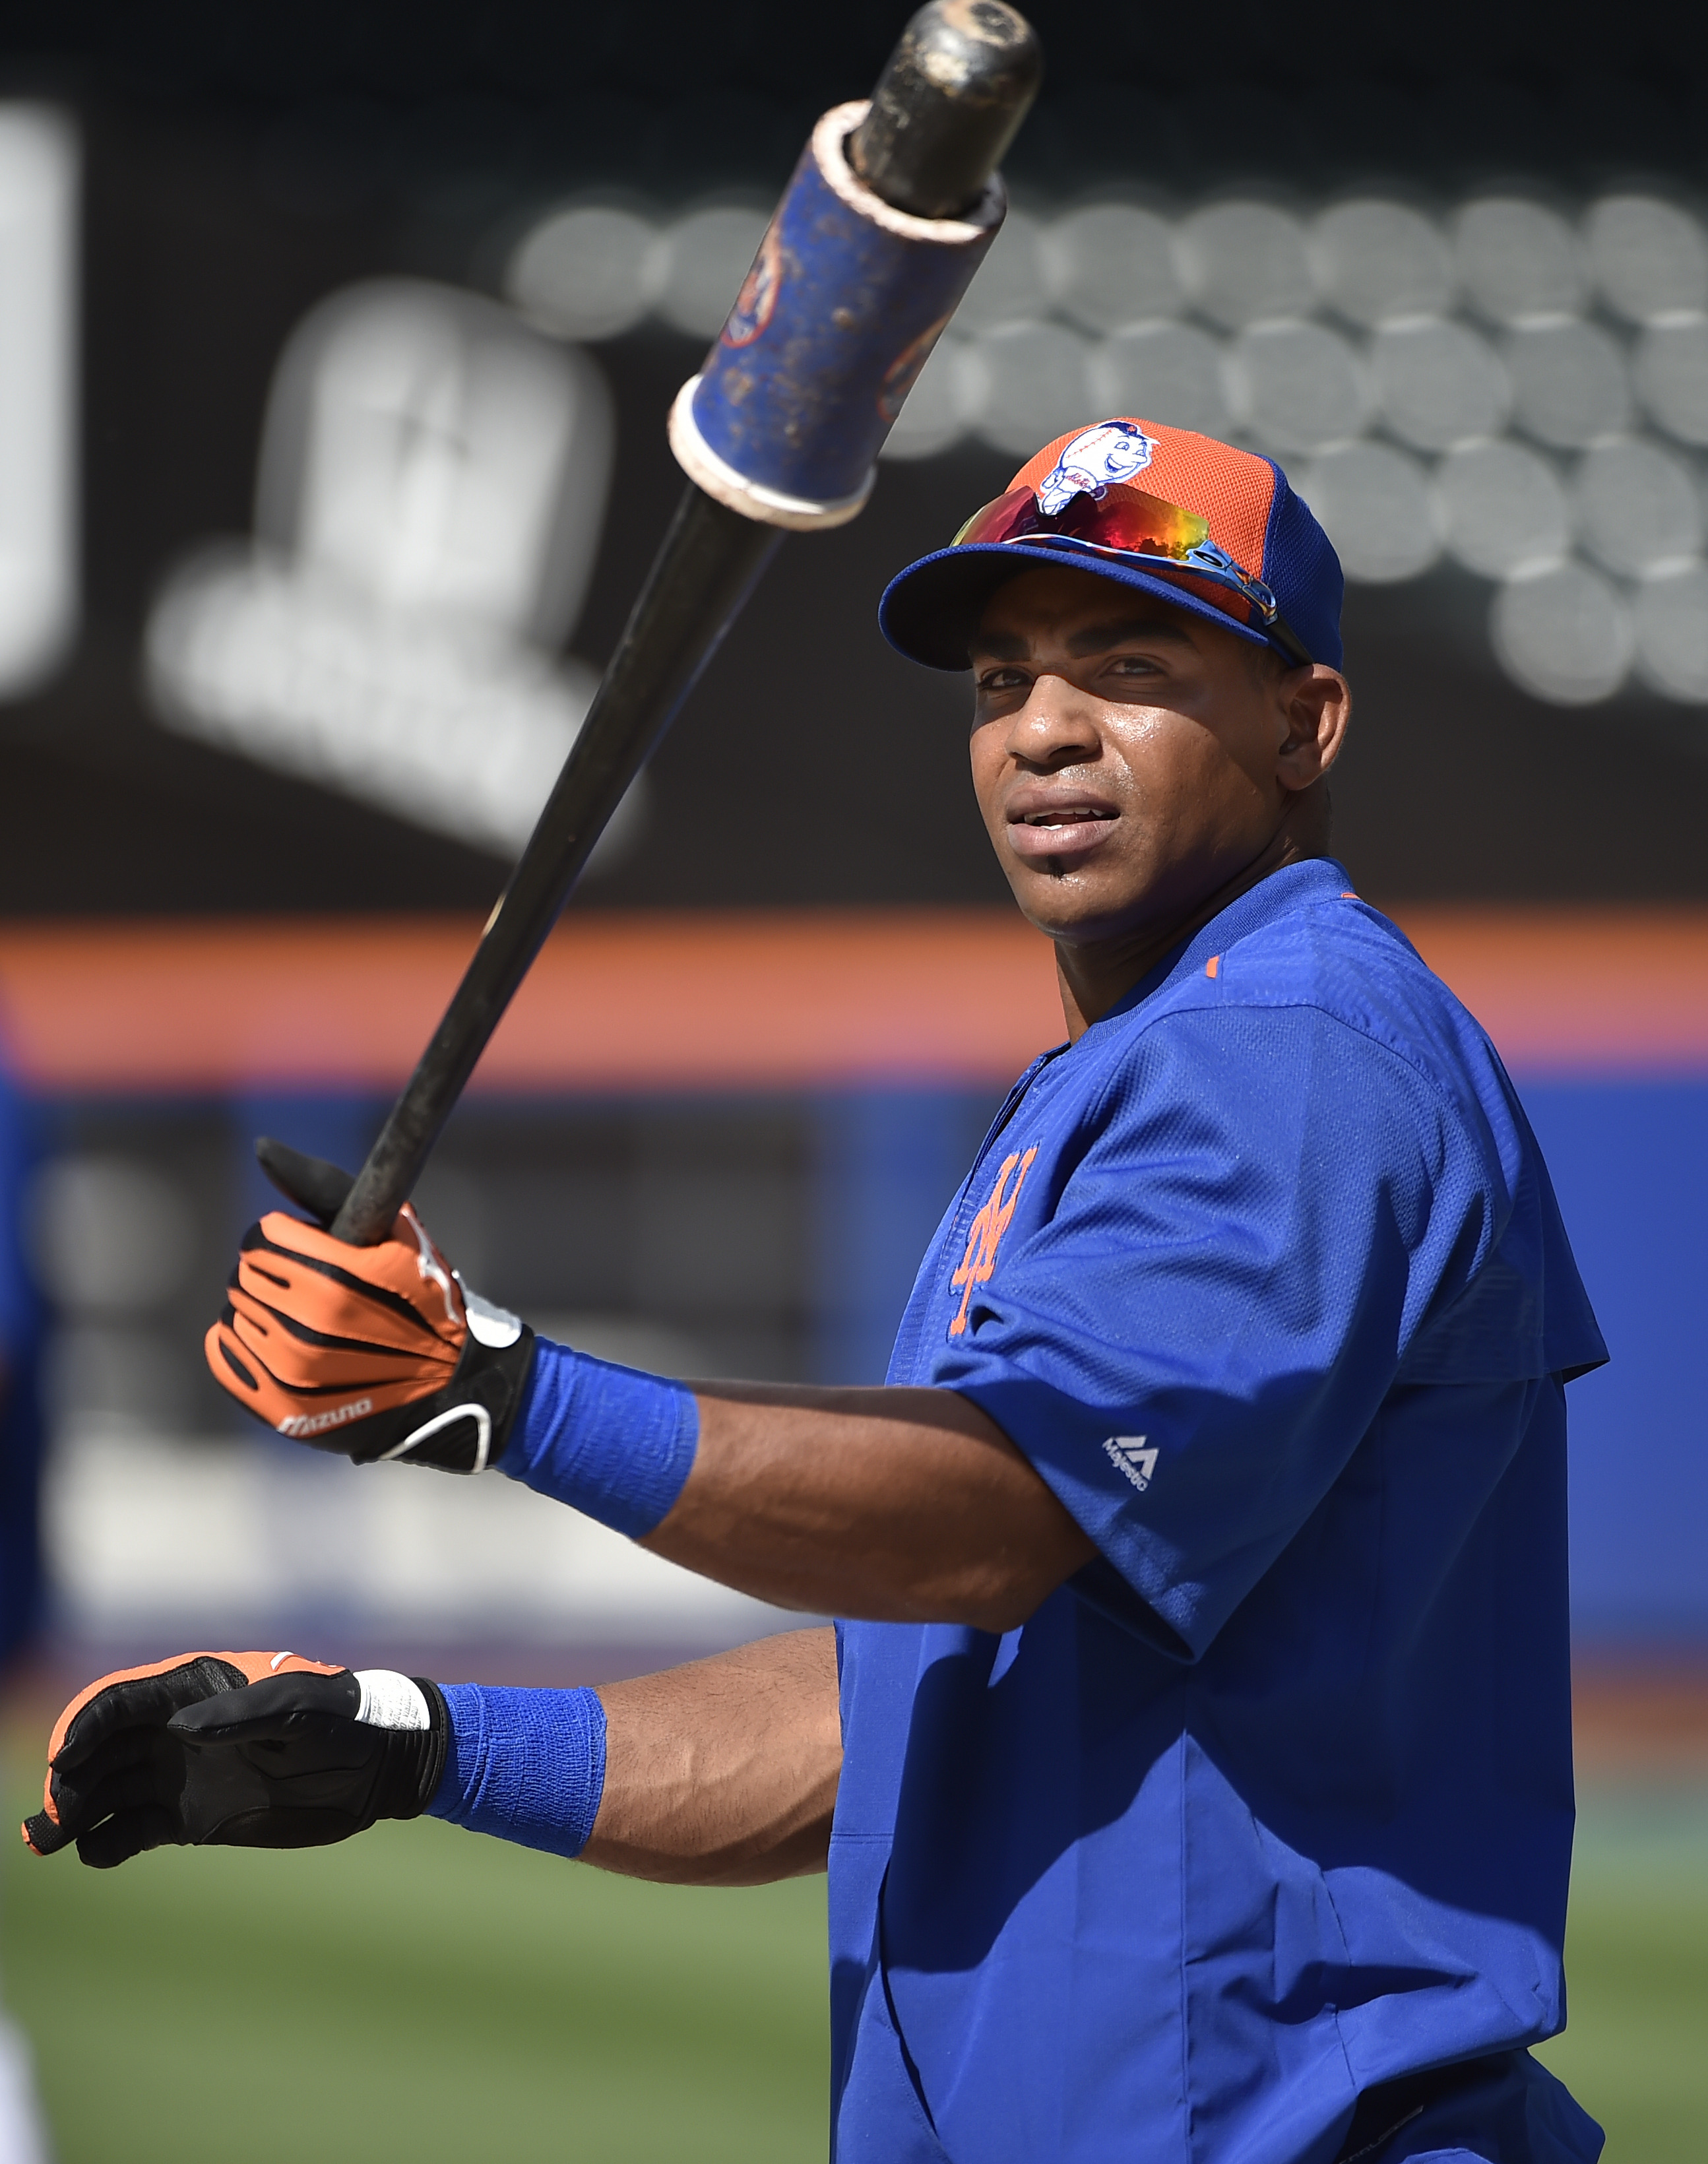 Newly acquired Yoenis Cespedes loosens up before taking batting practice before the baseball game against the Washington Nationals at Citi Field on Saturday, Aug. 1, 2015, in New York. (AP Photo/Kathy Kmonicek)